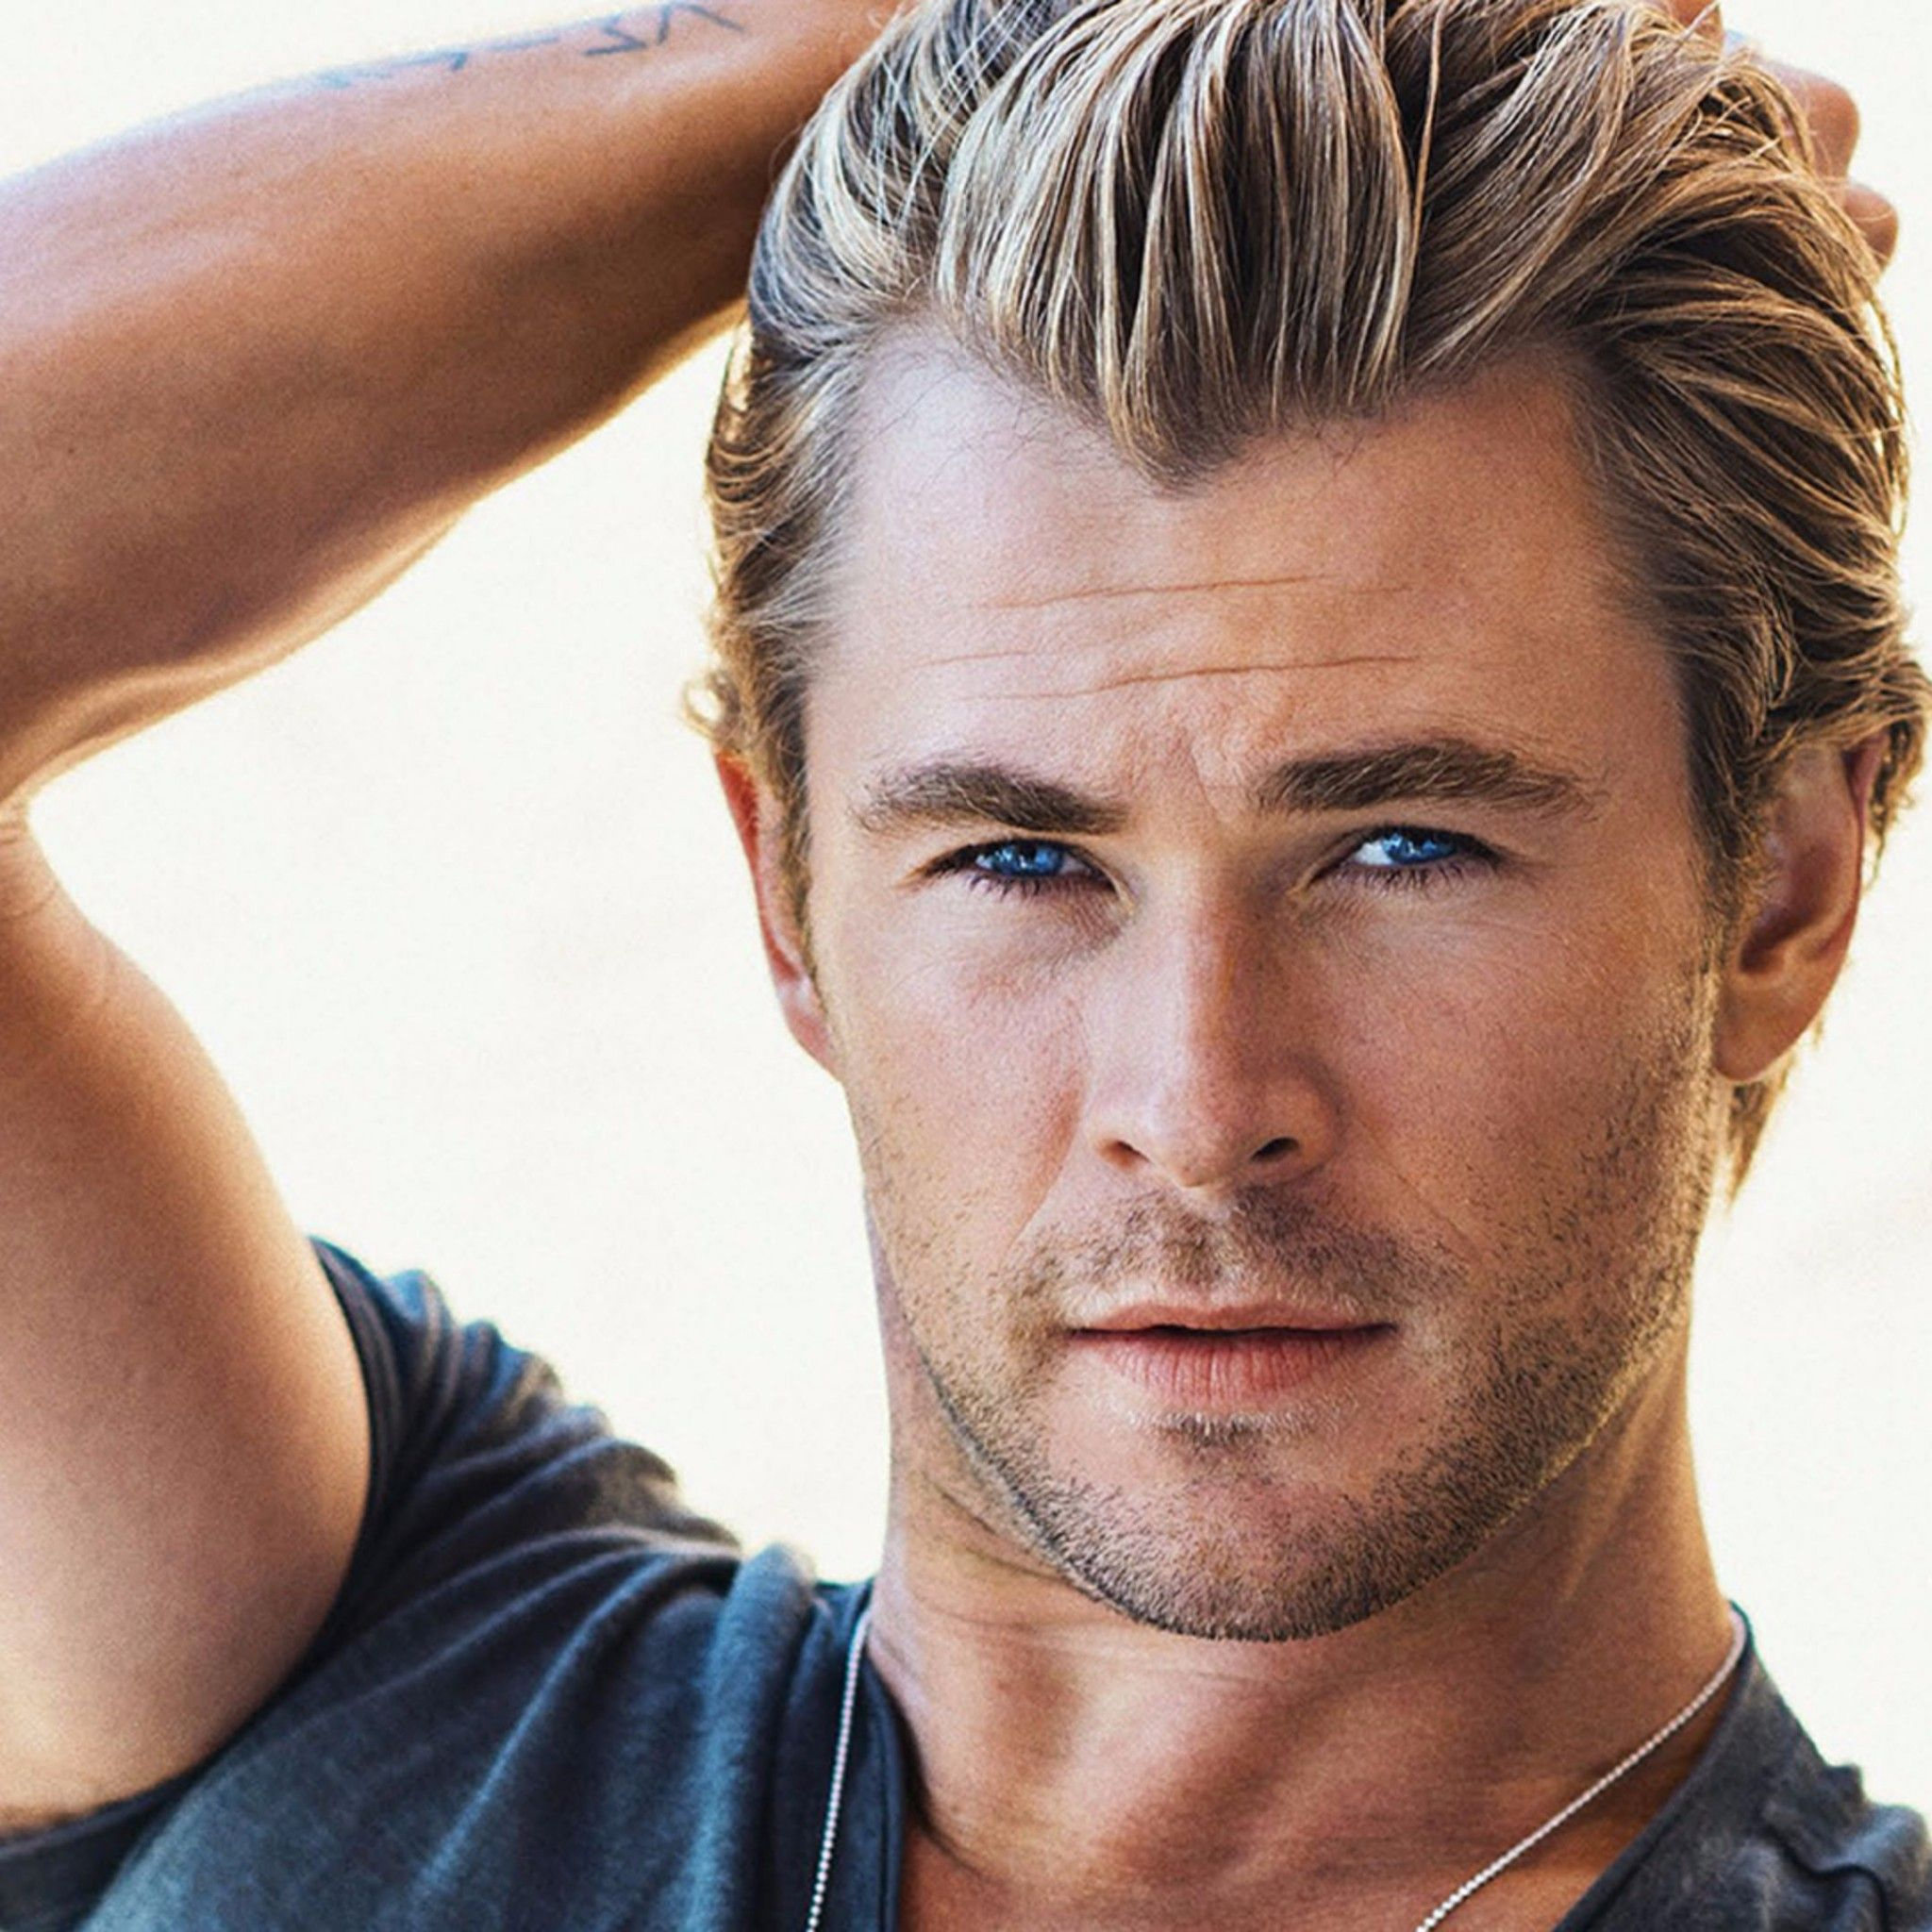 Inspiring Chris Hemsworth 4K Wallpaper | Free 4K Wallpaper